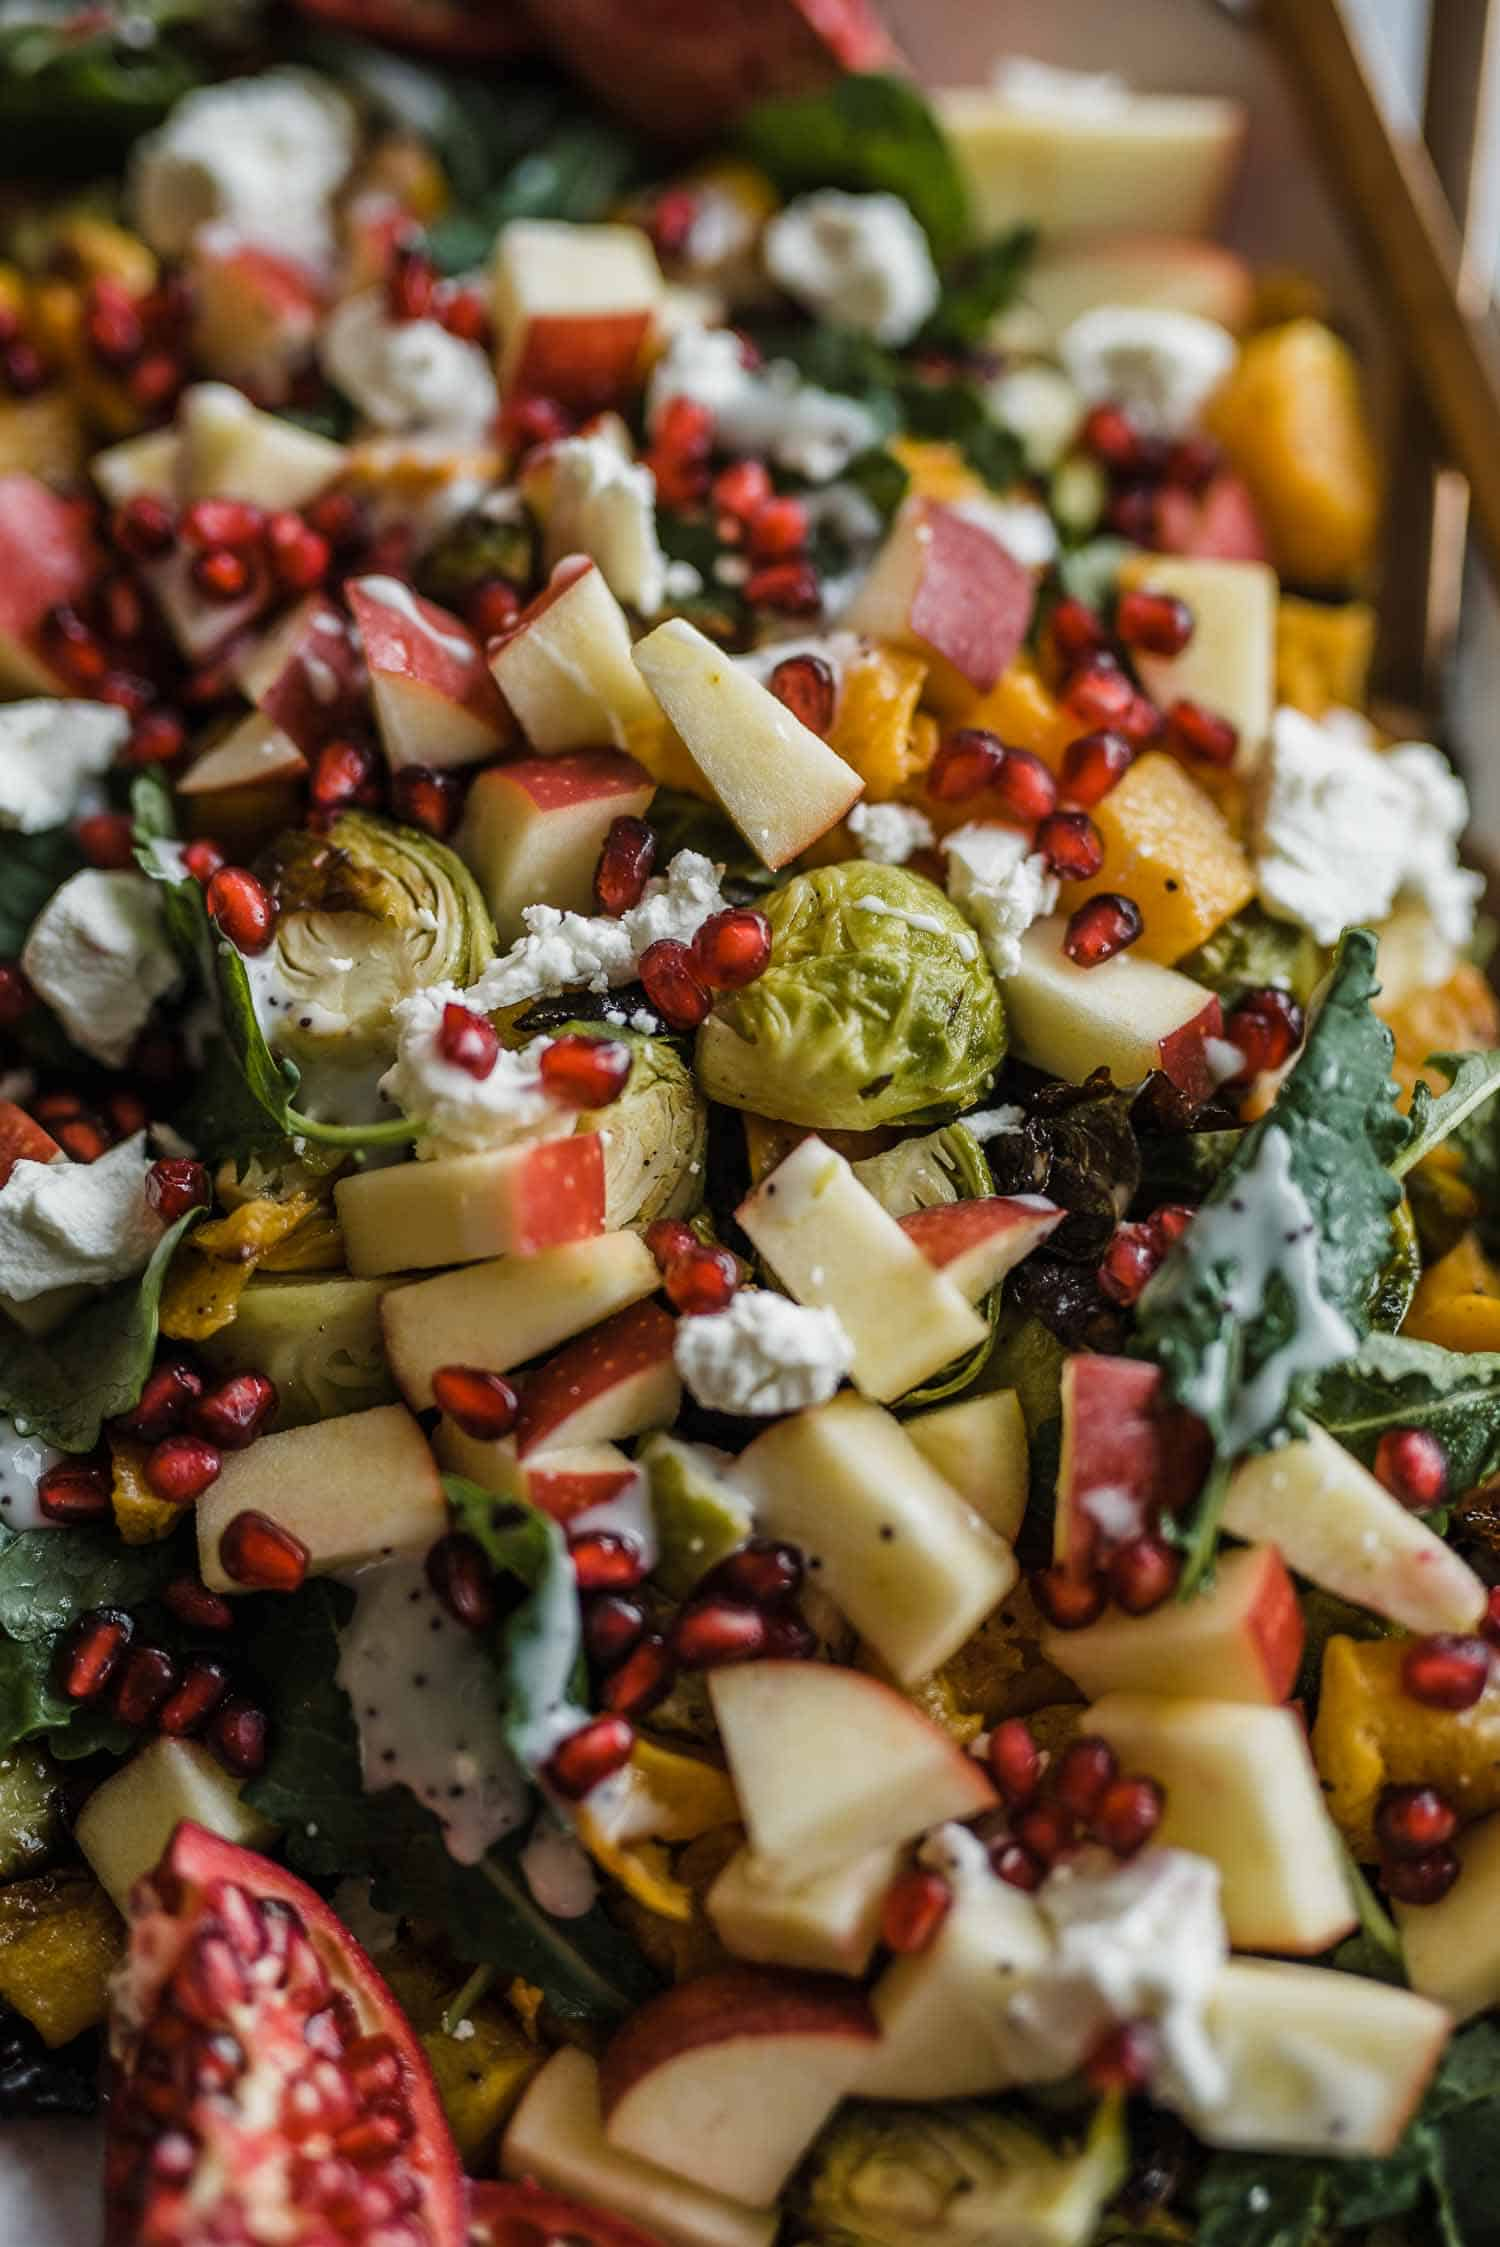 Brussels Sprouts and Butternut Squash Salad Recipe, warm autumn salad, thanksgiving side dish ideas - My Style Vita